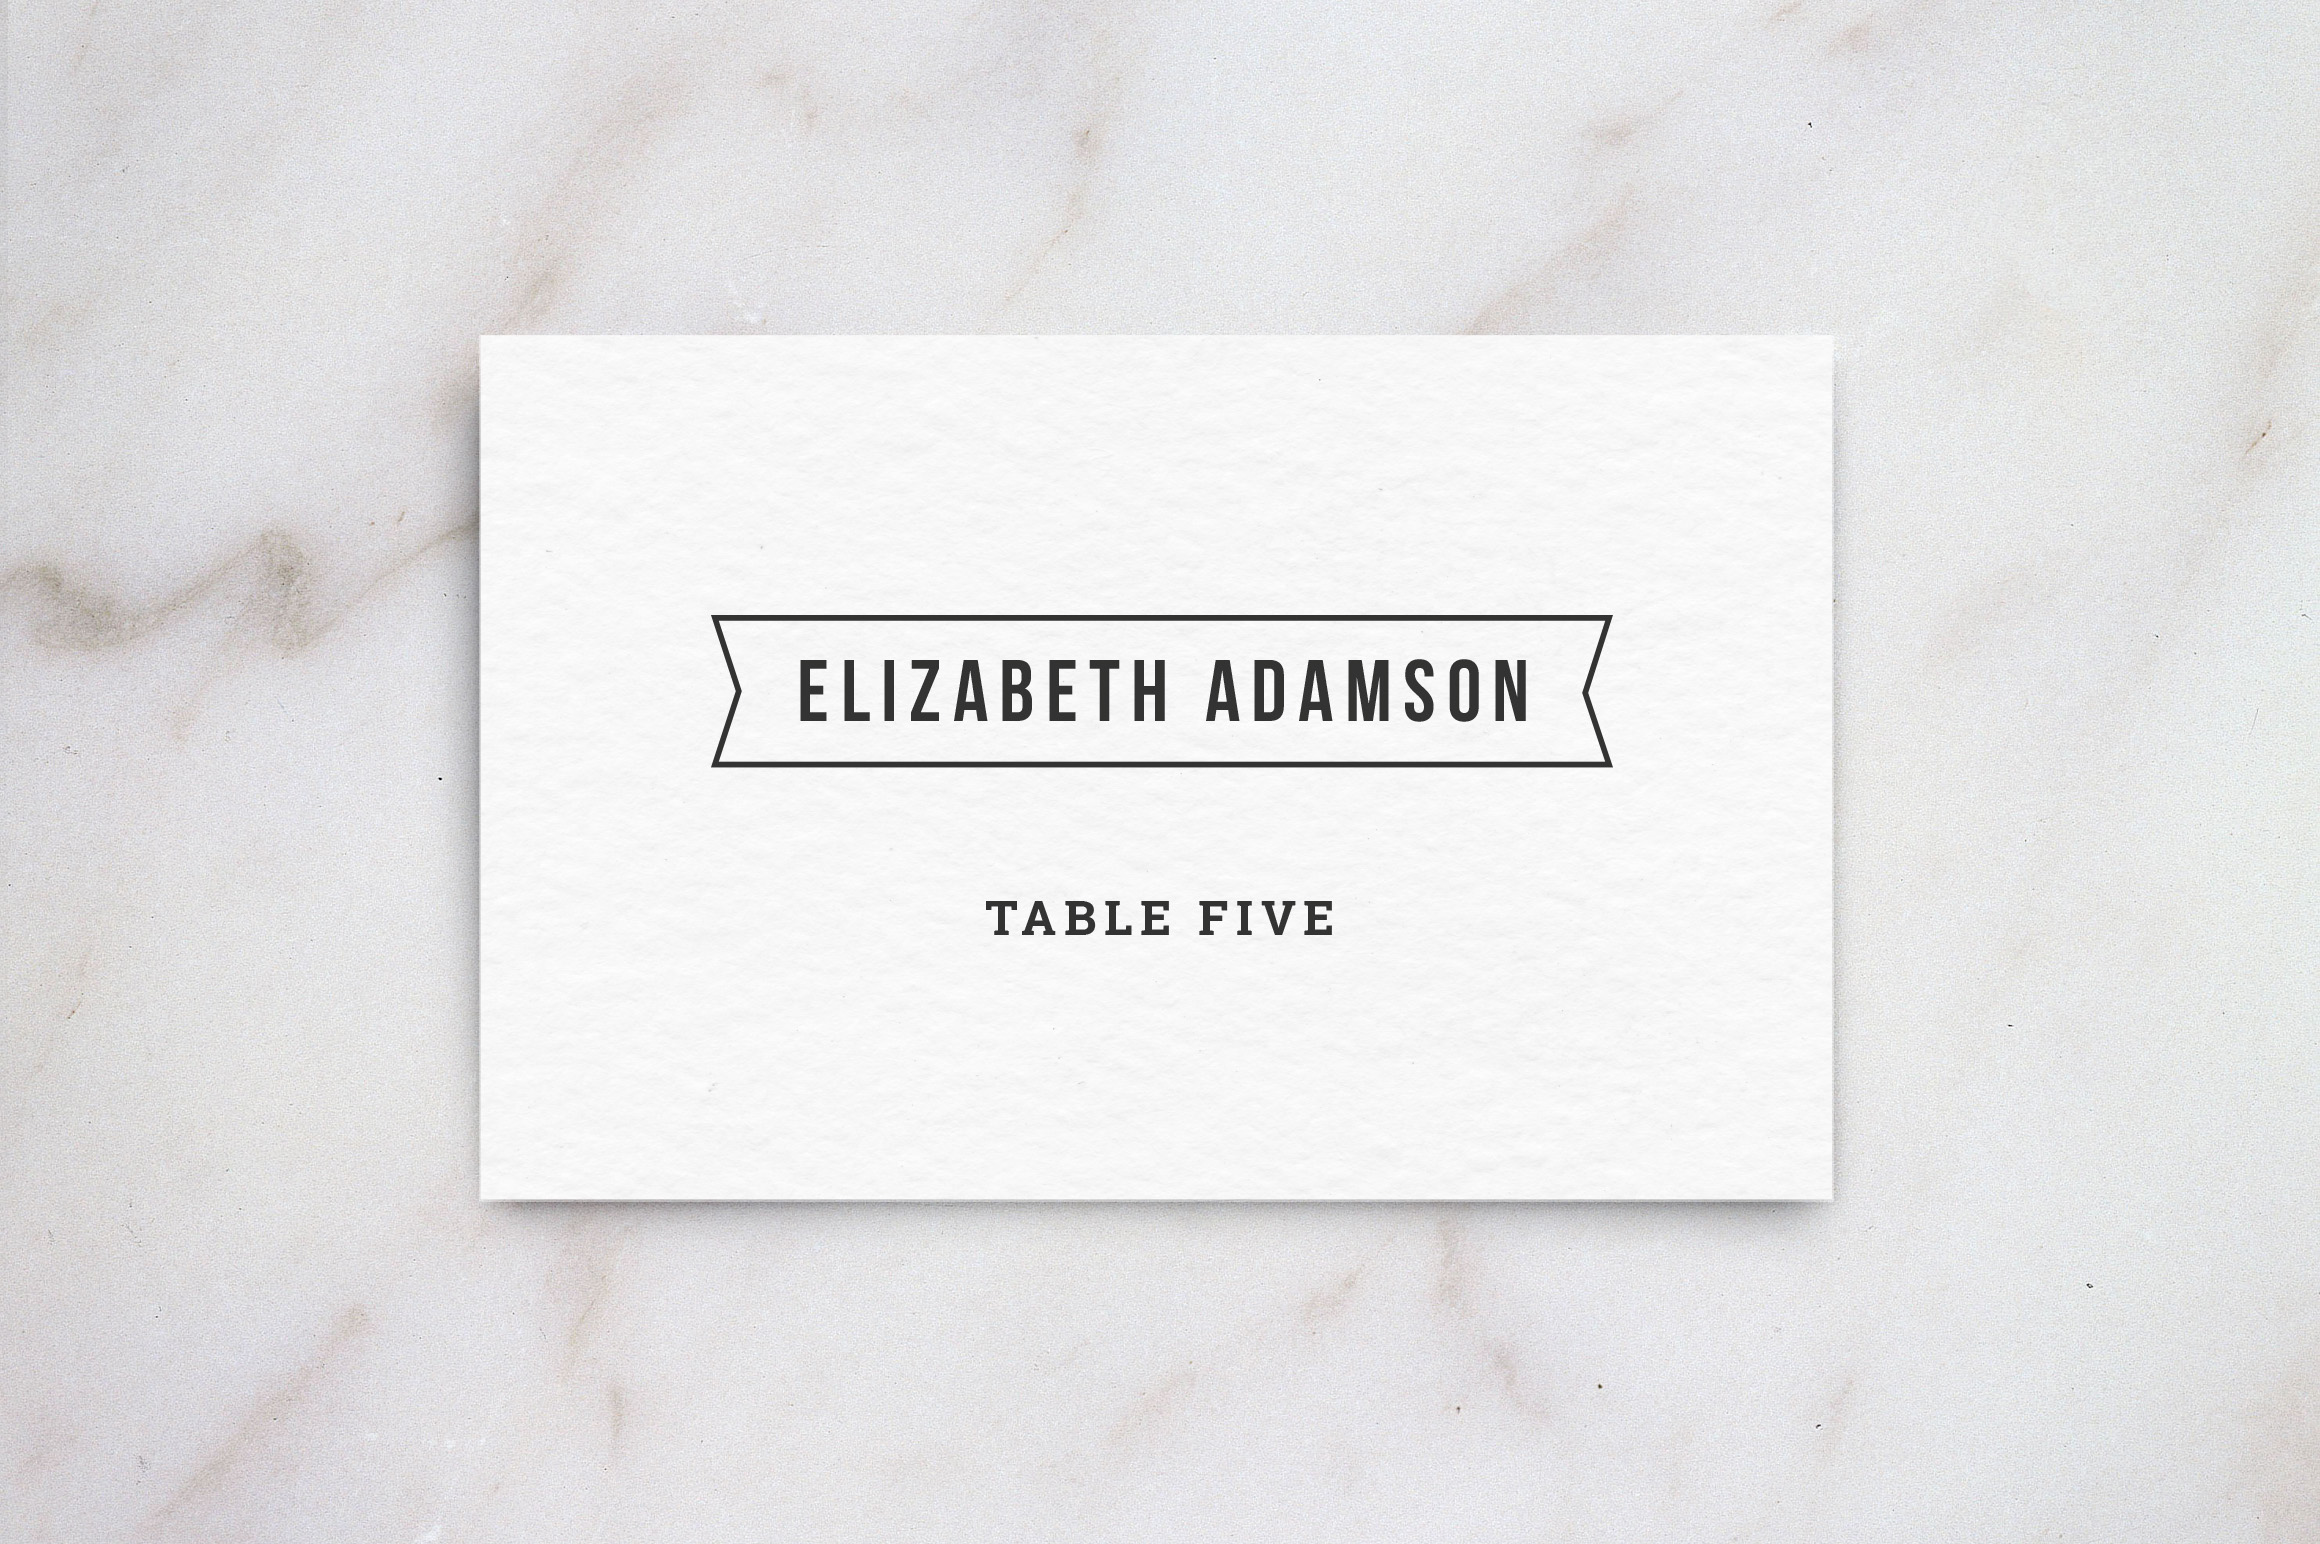 Wedding Table Place Card Template ~ Card Templates on ...